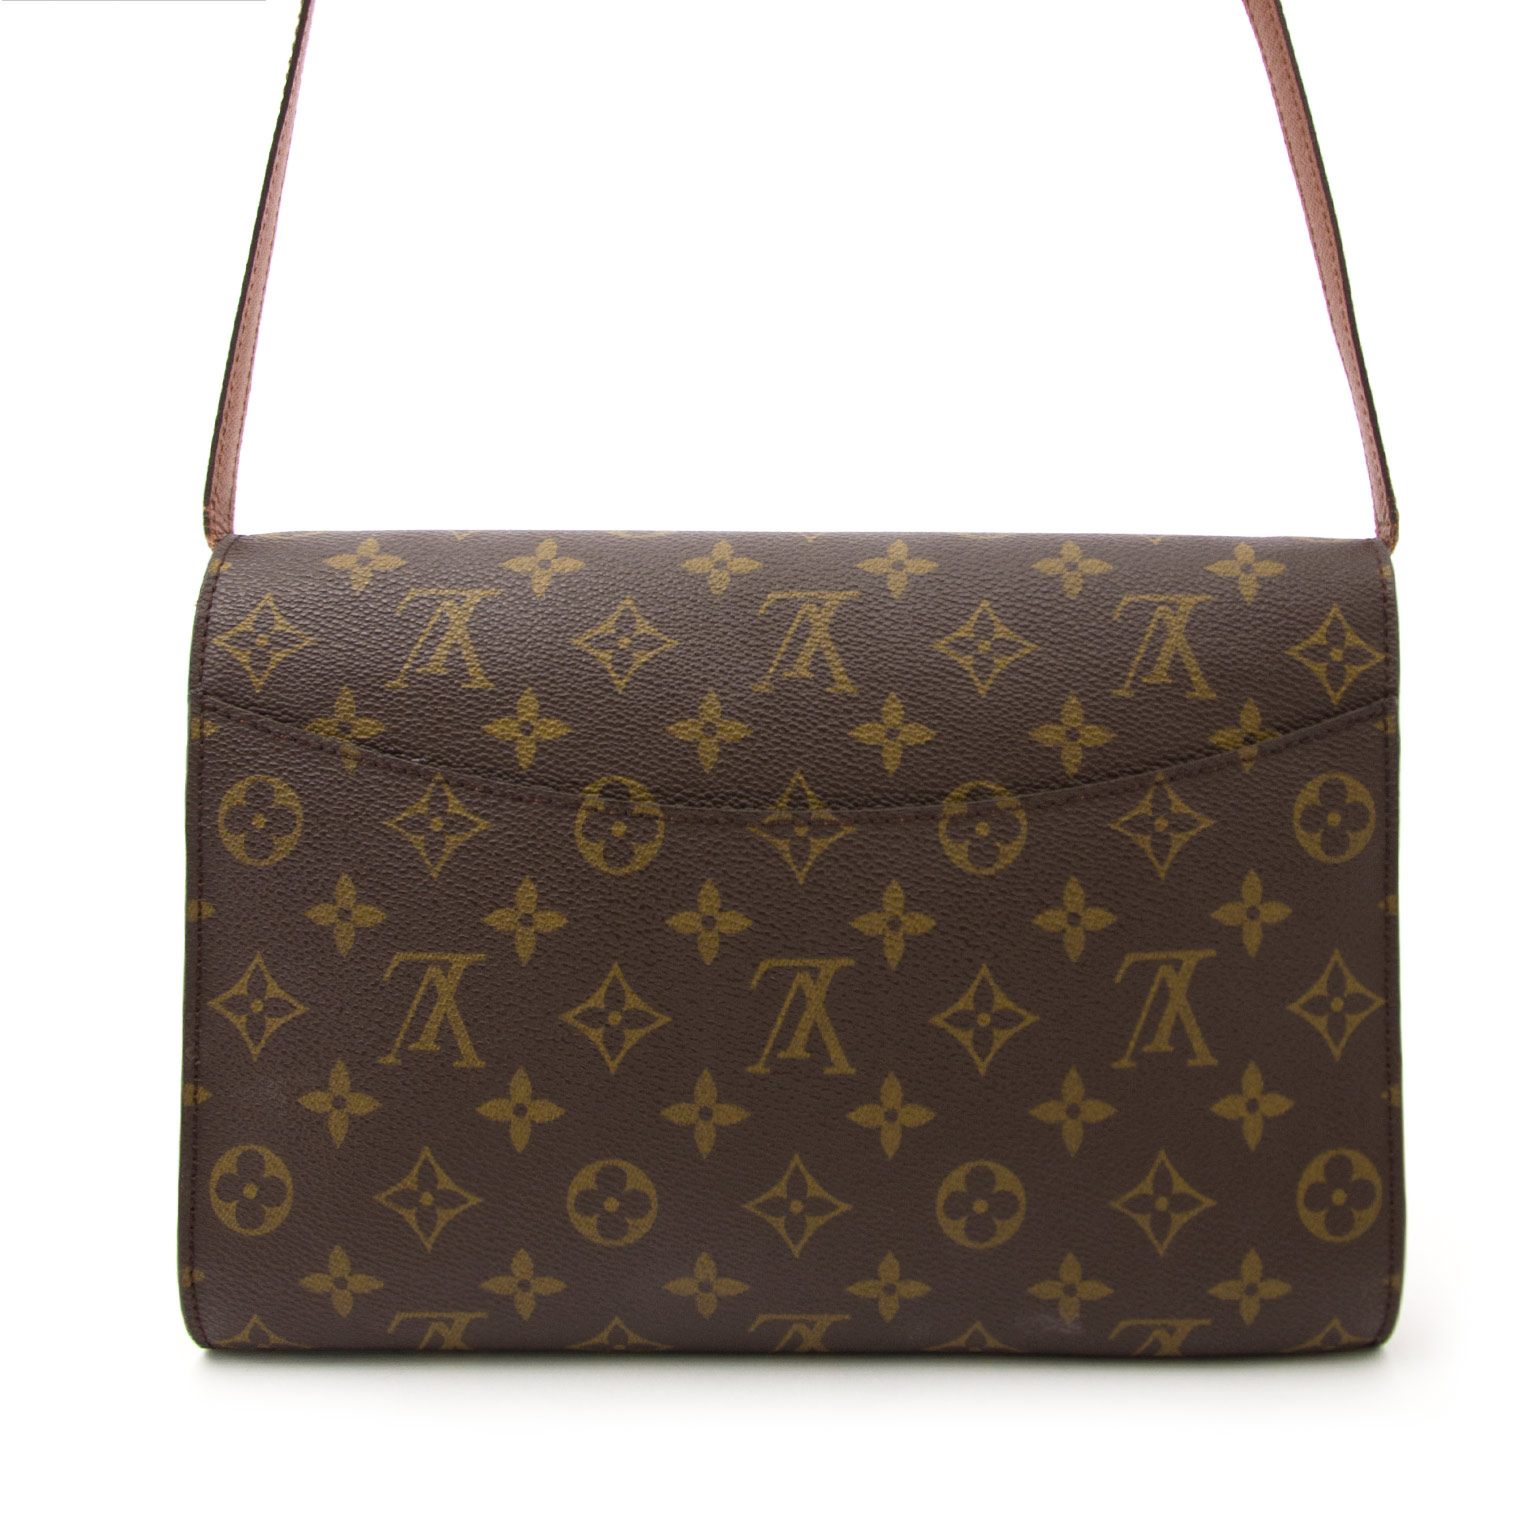 972dcb61fe6d ... Buy safe and secure online at labellov.com for the best price louis  vuitton monogram